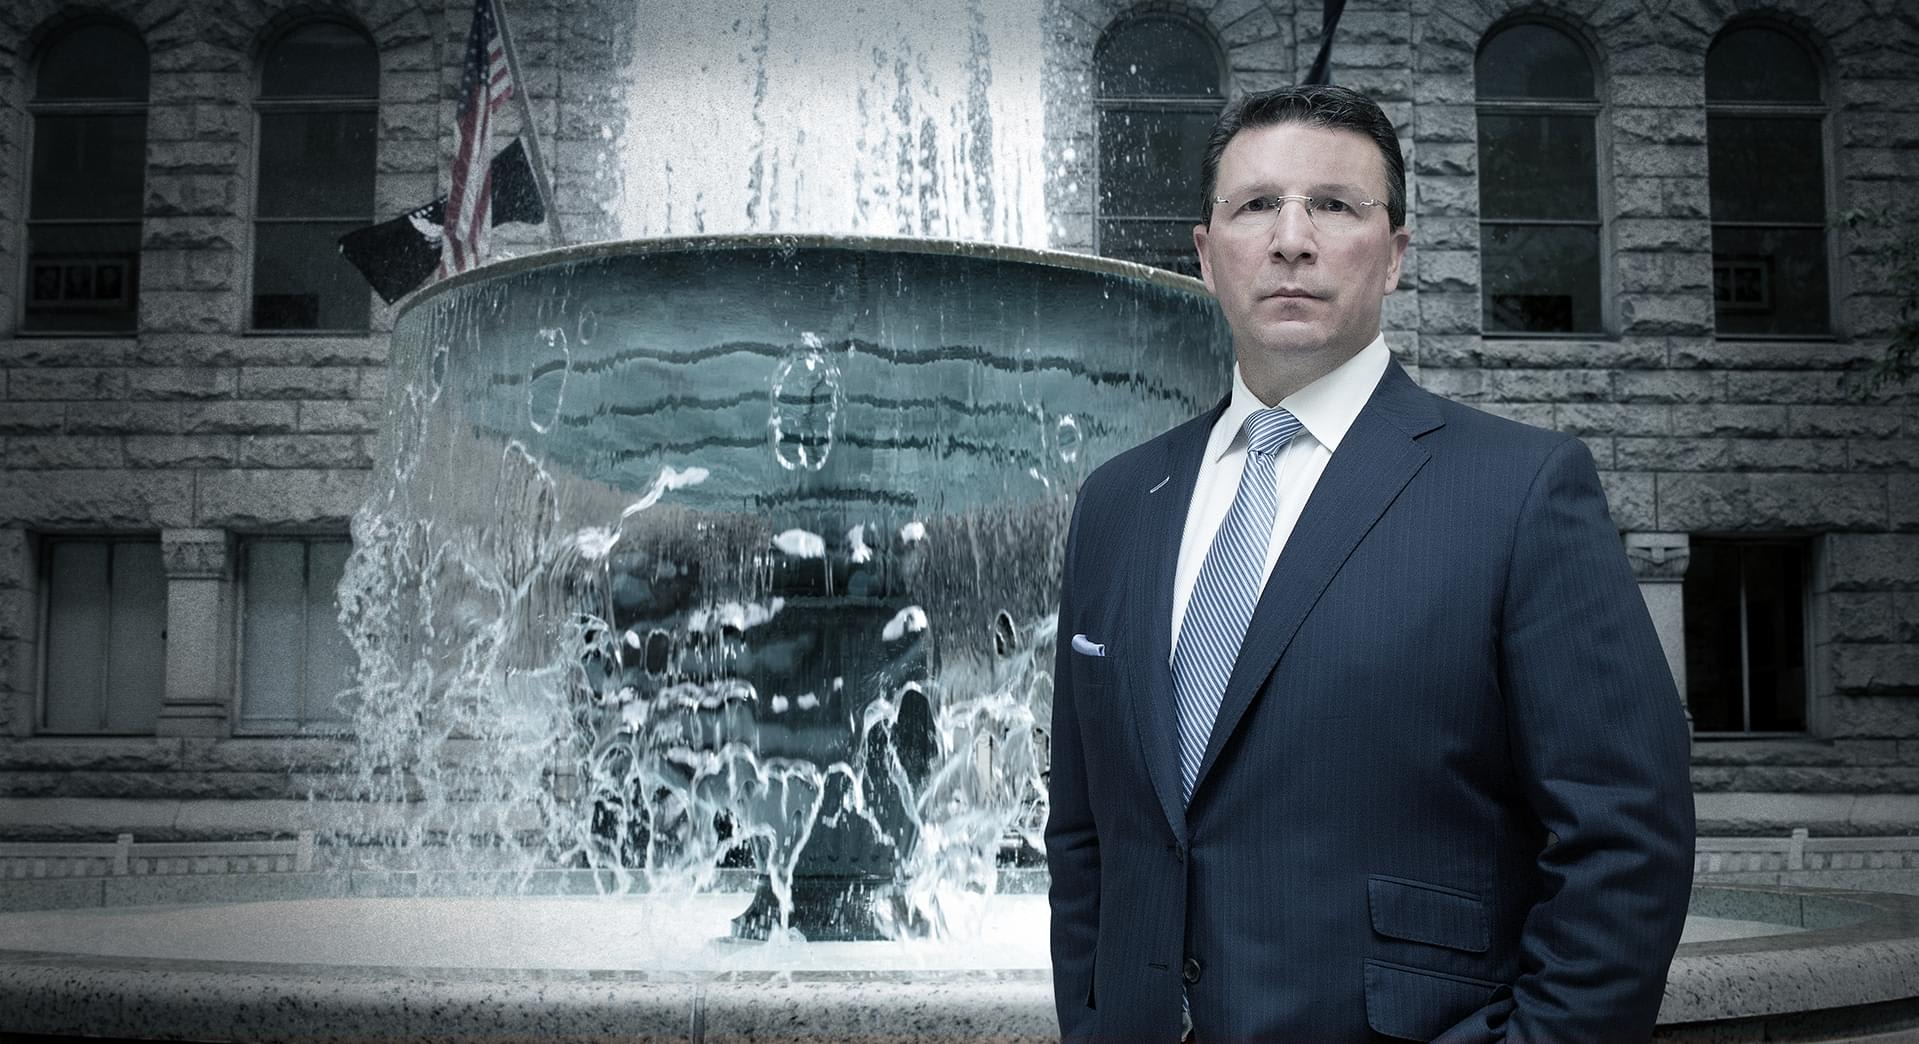 Lawyer Standing In Front of Fountain